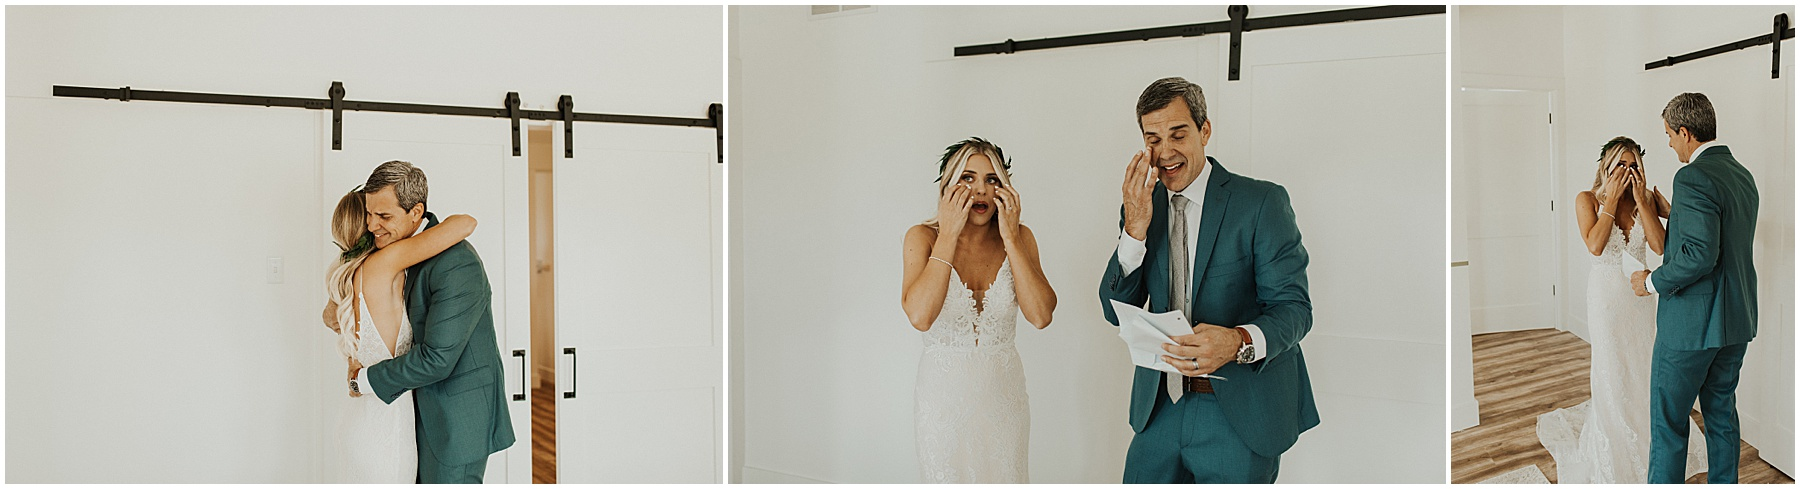 tips for better getting ready photos at your wedding_0038.jpg